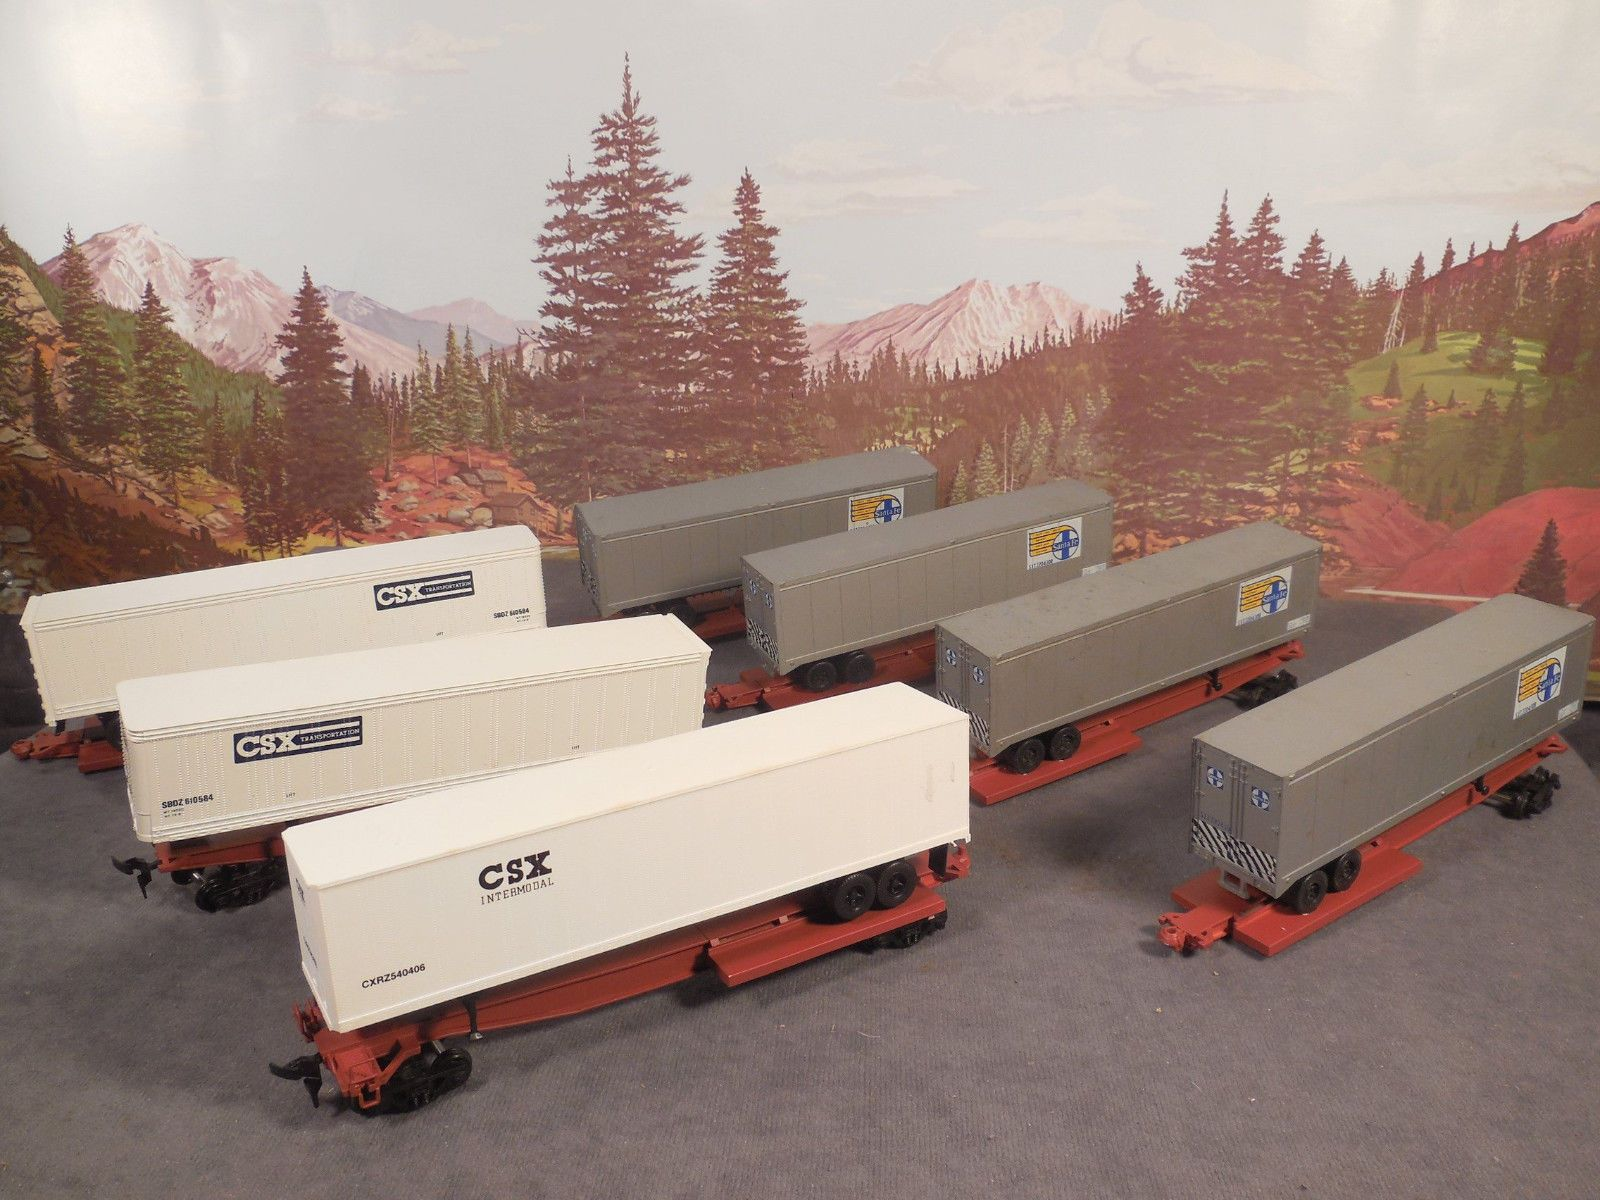 HO BUILT Athearn SEVEN (7) CAR SET Impact End Spine Cars CSX SANTA FE w/TRAILERS https://t.co/EsMflmbBvA https://t.co/4lRxbbXq2M